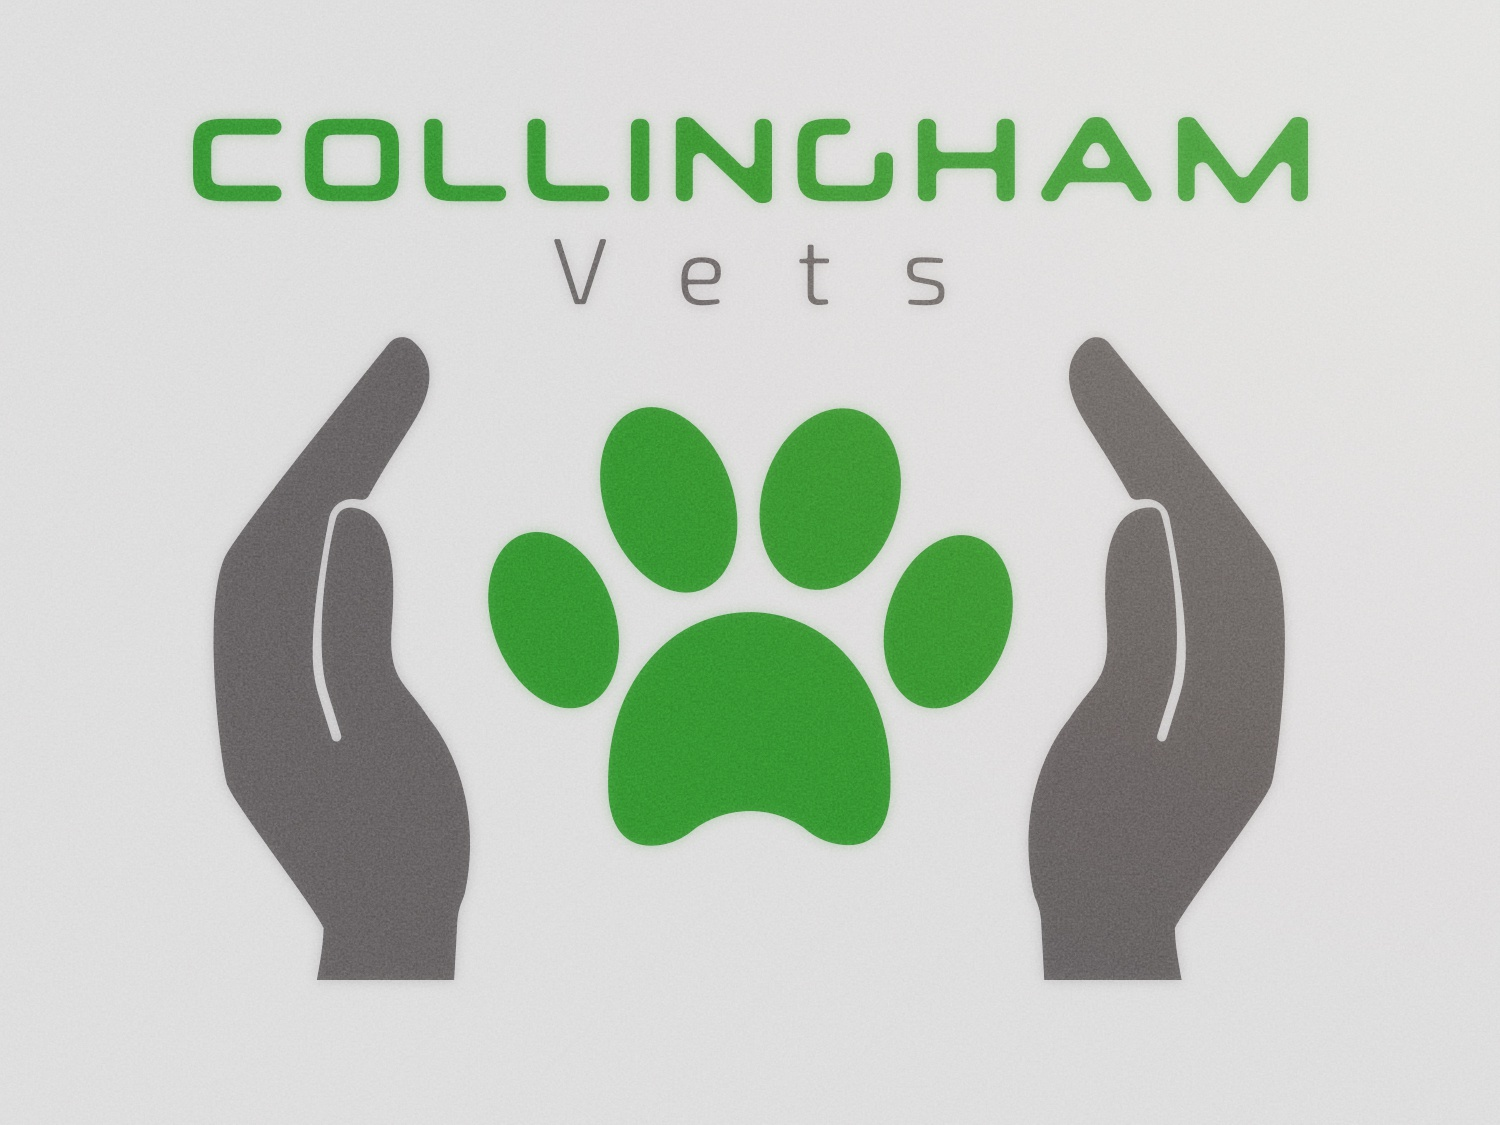 Collingham Vets - Preliminary paw animal pet clinic veterinary vets logos branding logodesigner logodesign graphic flat logo graphicdesigner graphicdesign design